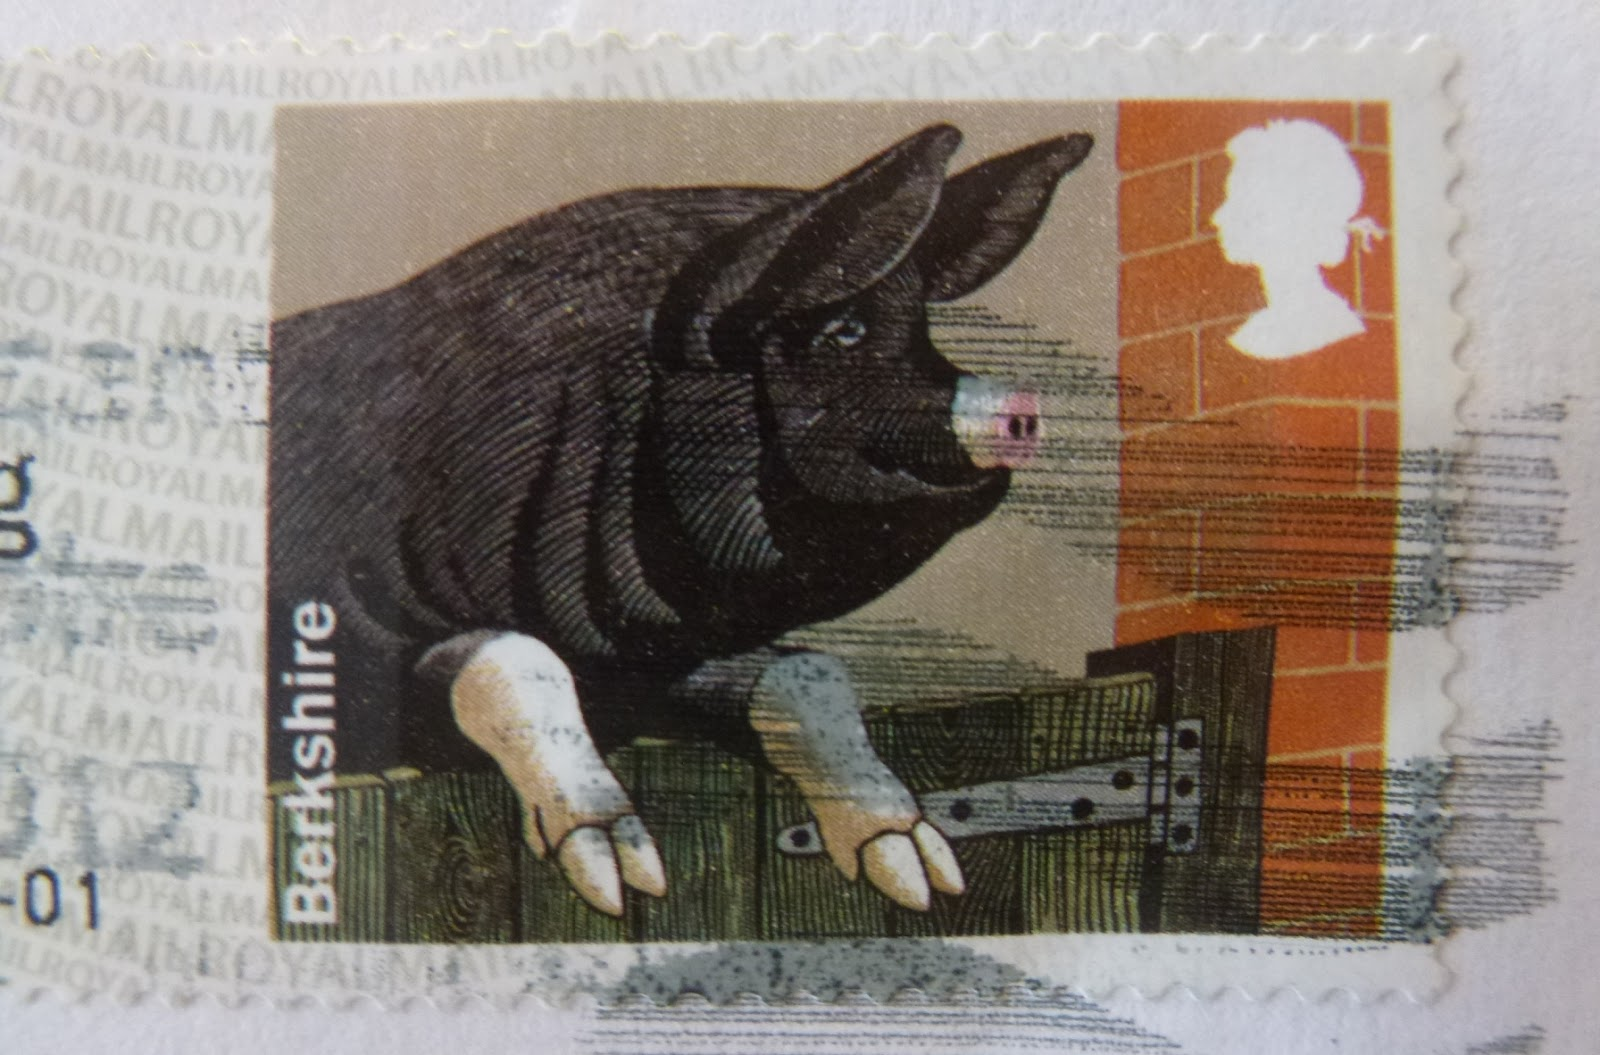 Berkshire Pigs Royal Mail